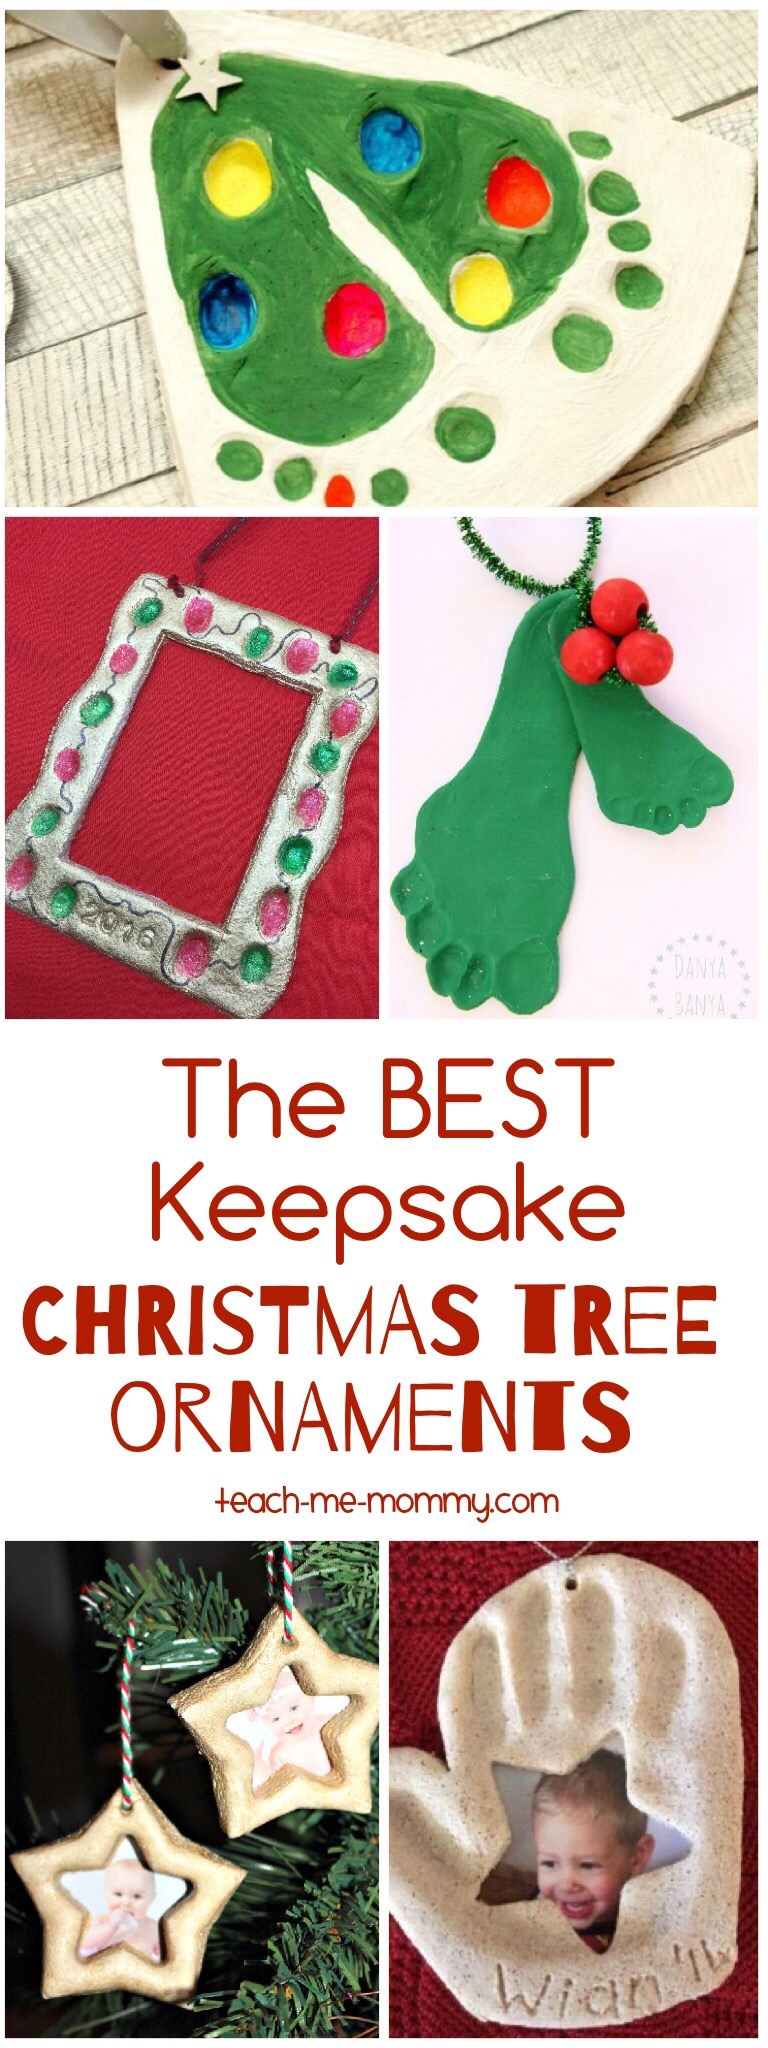 Easy Footprint Christmas Tree >> Best Keepsake Christmas Ornaments - Teach Me Mommy